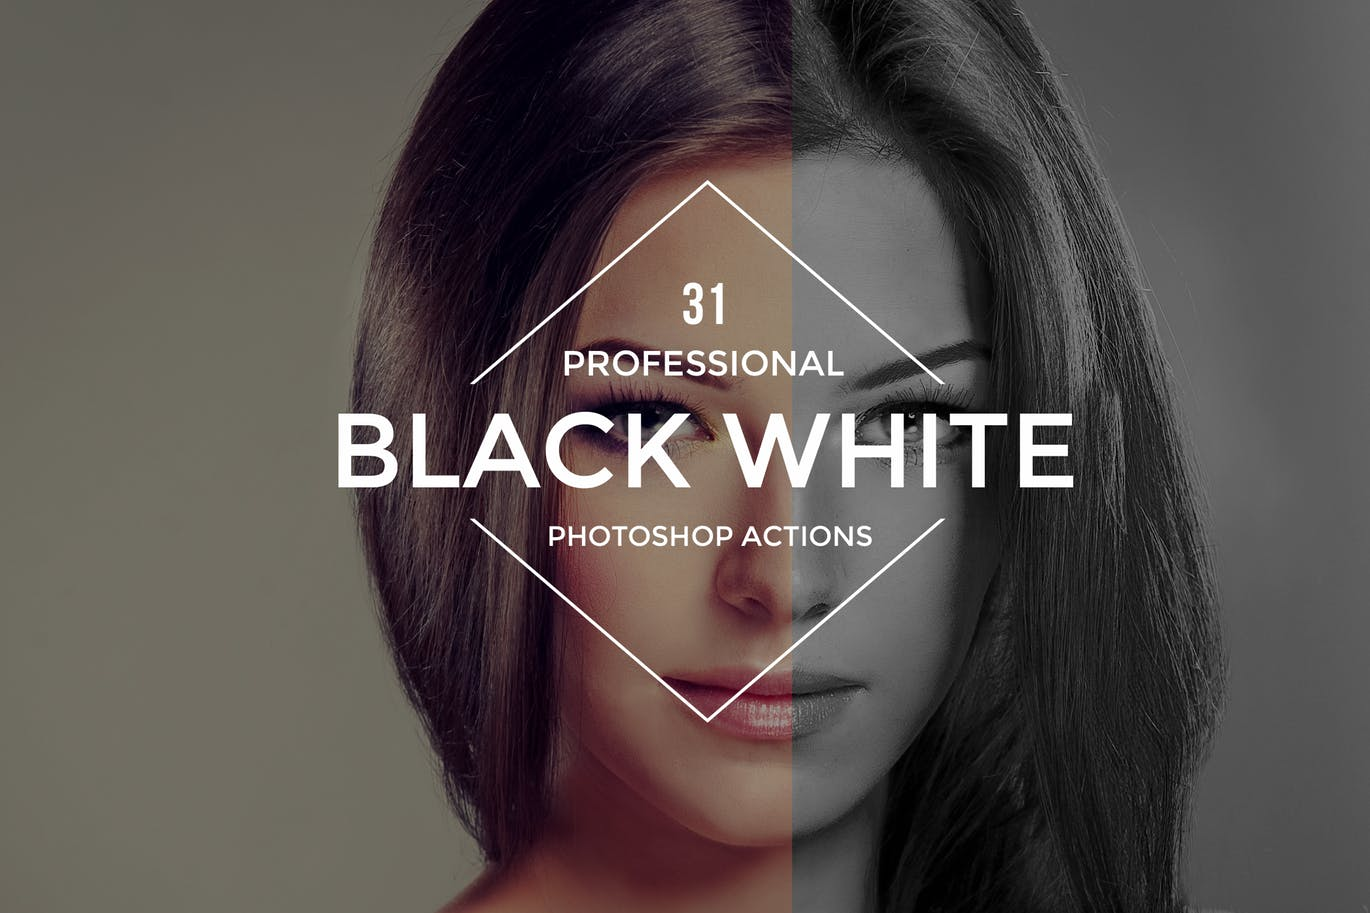 Black-White-Photoshop-Actions 40+ Best Photoshop Actions of 2018 design tips